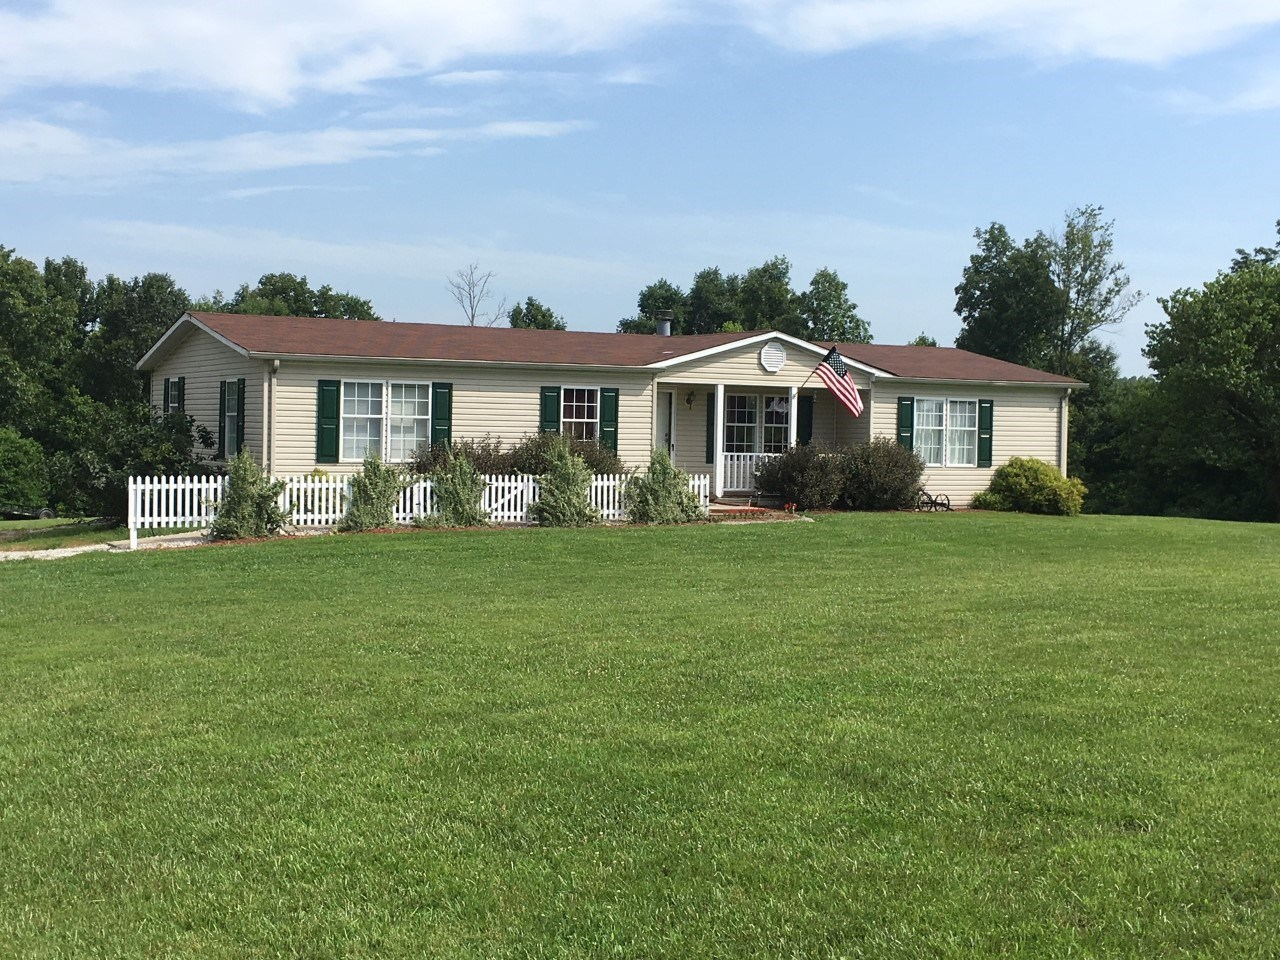 COUNTRY HOME WITH ACREAGE - CASEY COUNTY KENTUCKY